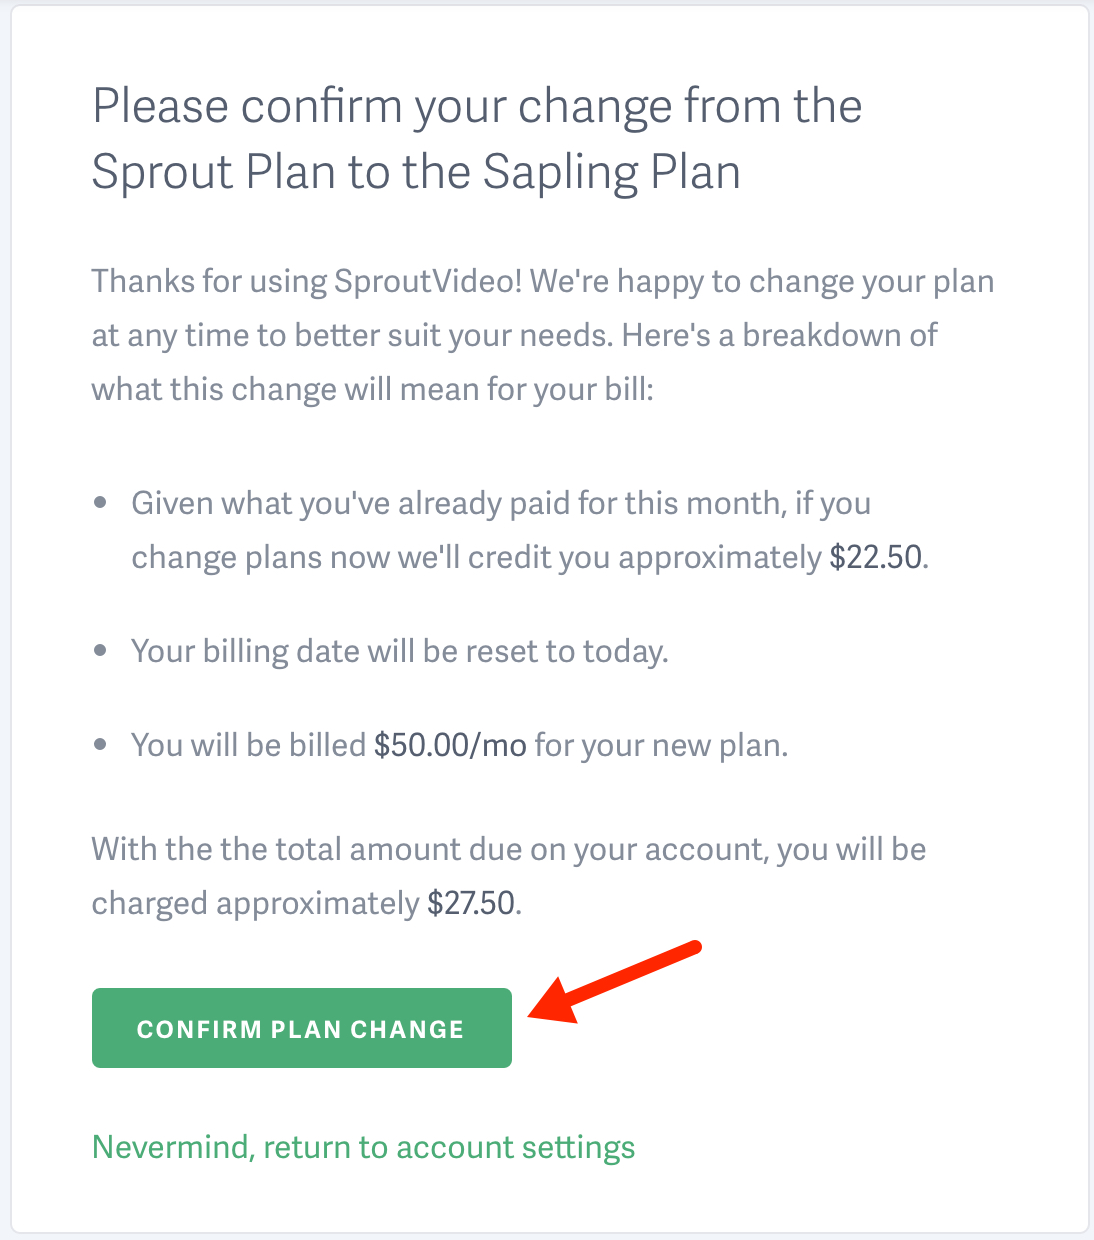 Upgrade or downgrade your SproutVideo account